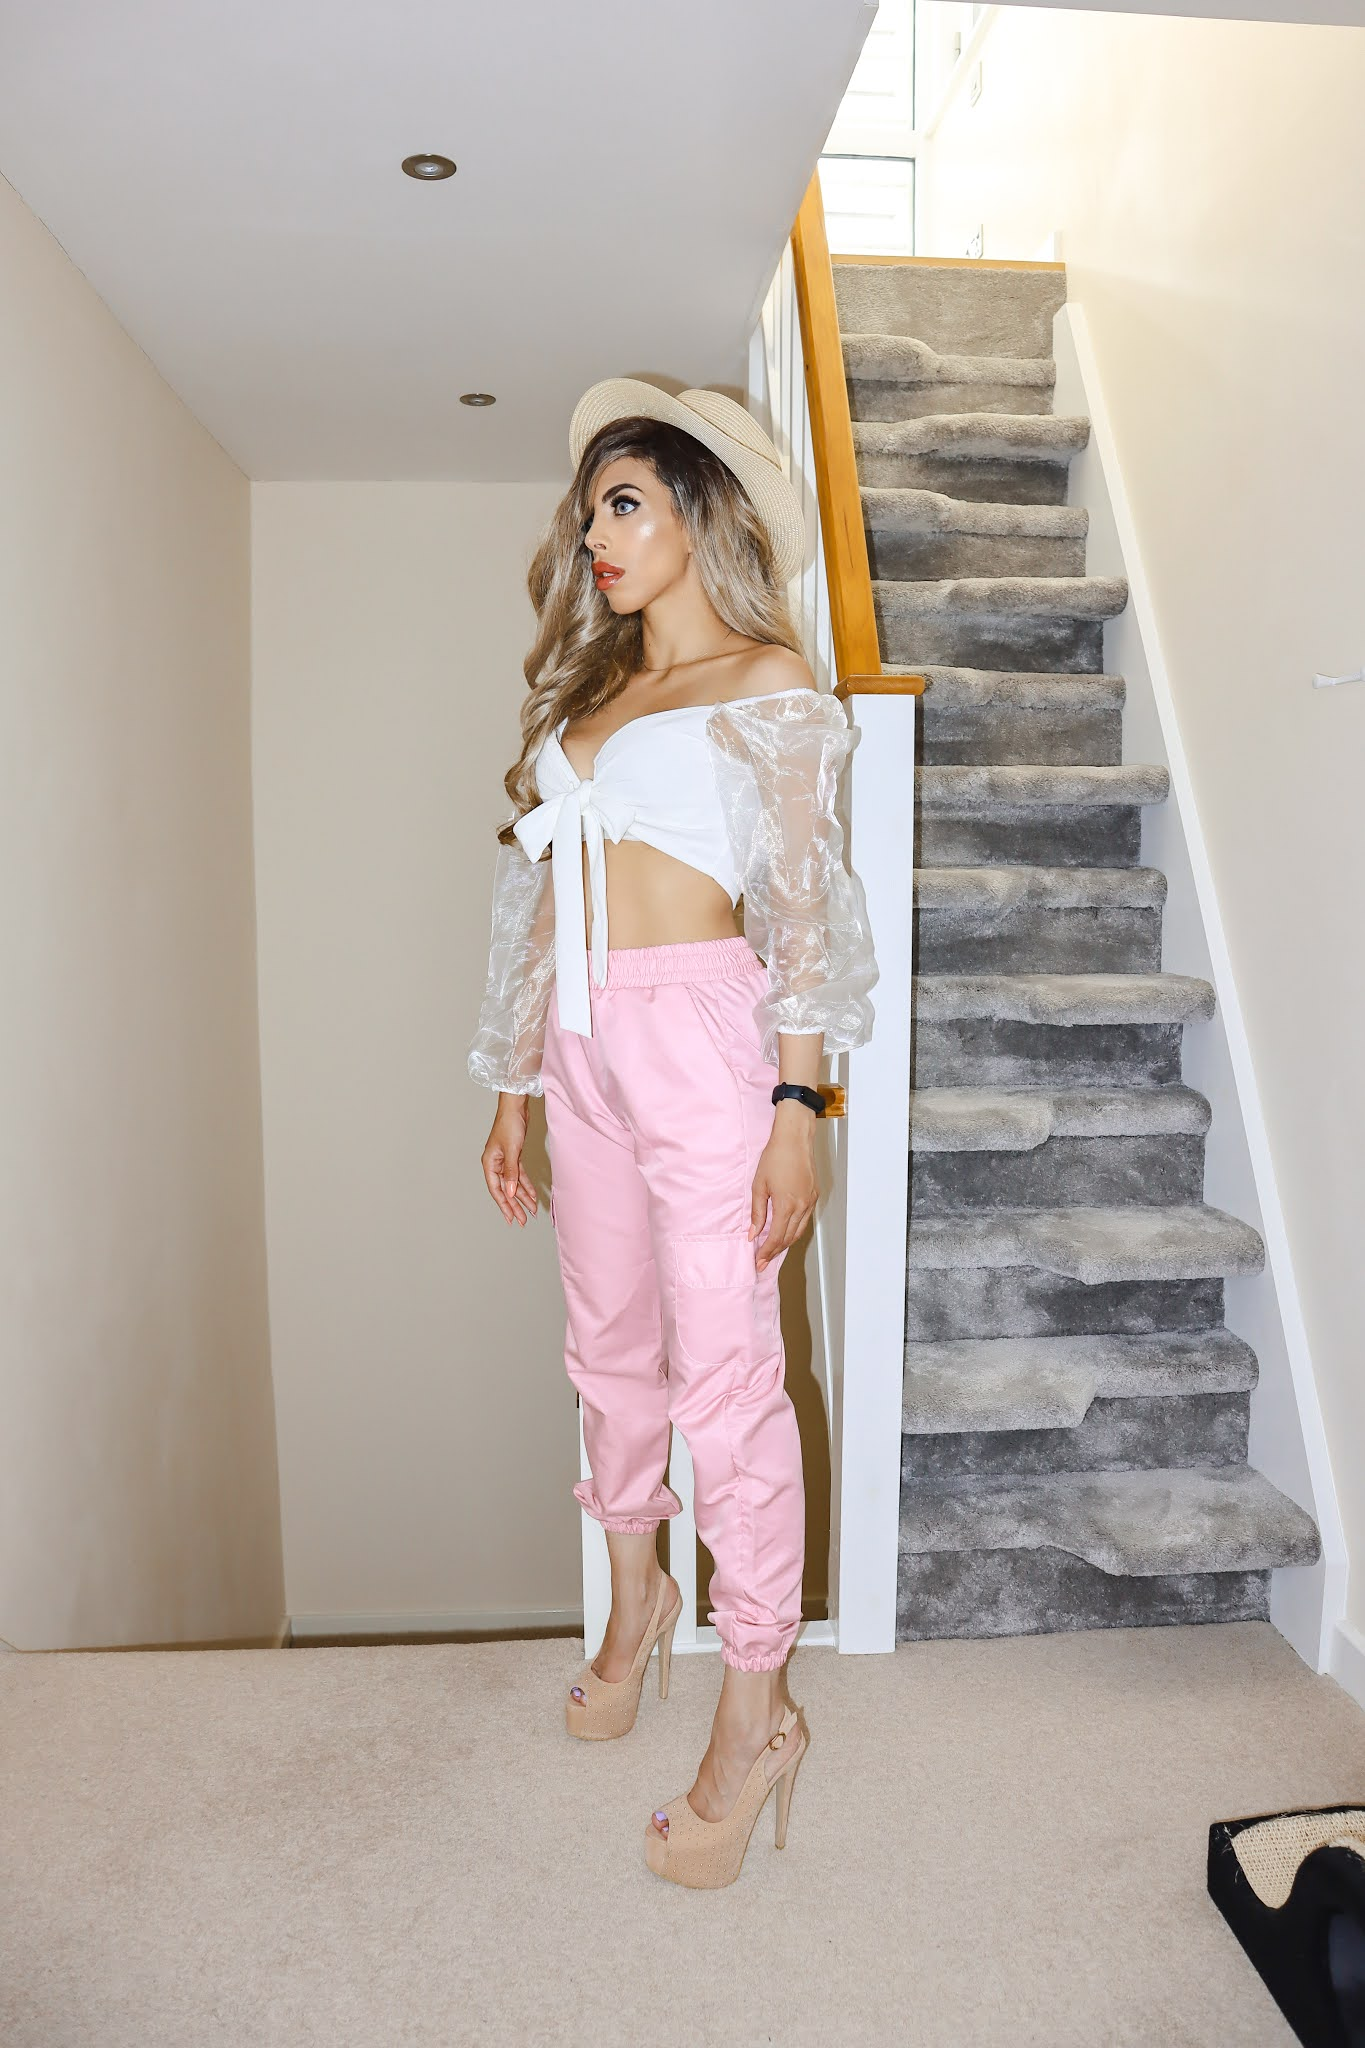 The Femme Luxe White Tie Front Organza Mesh Sleeve Crop Top in model Dash